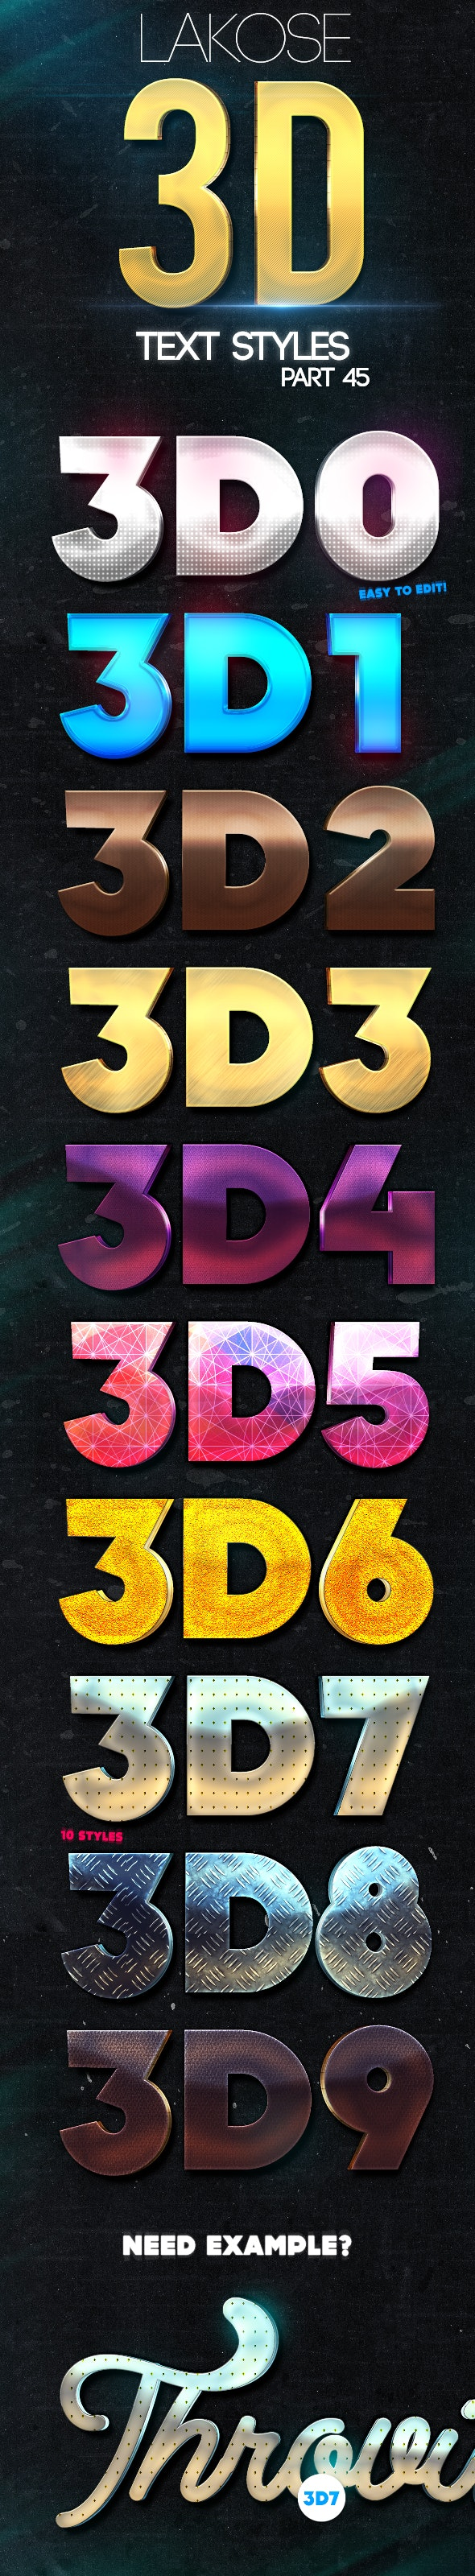 Lakose 3D Text Styles Part 45 - Text Effects Styles